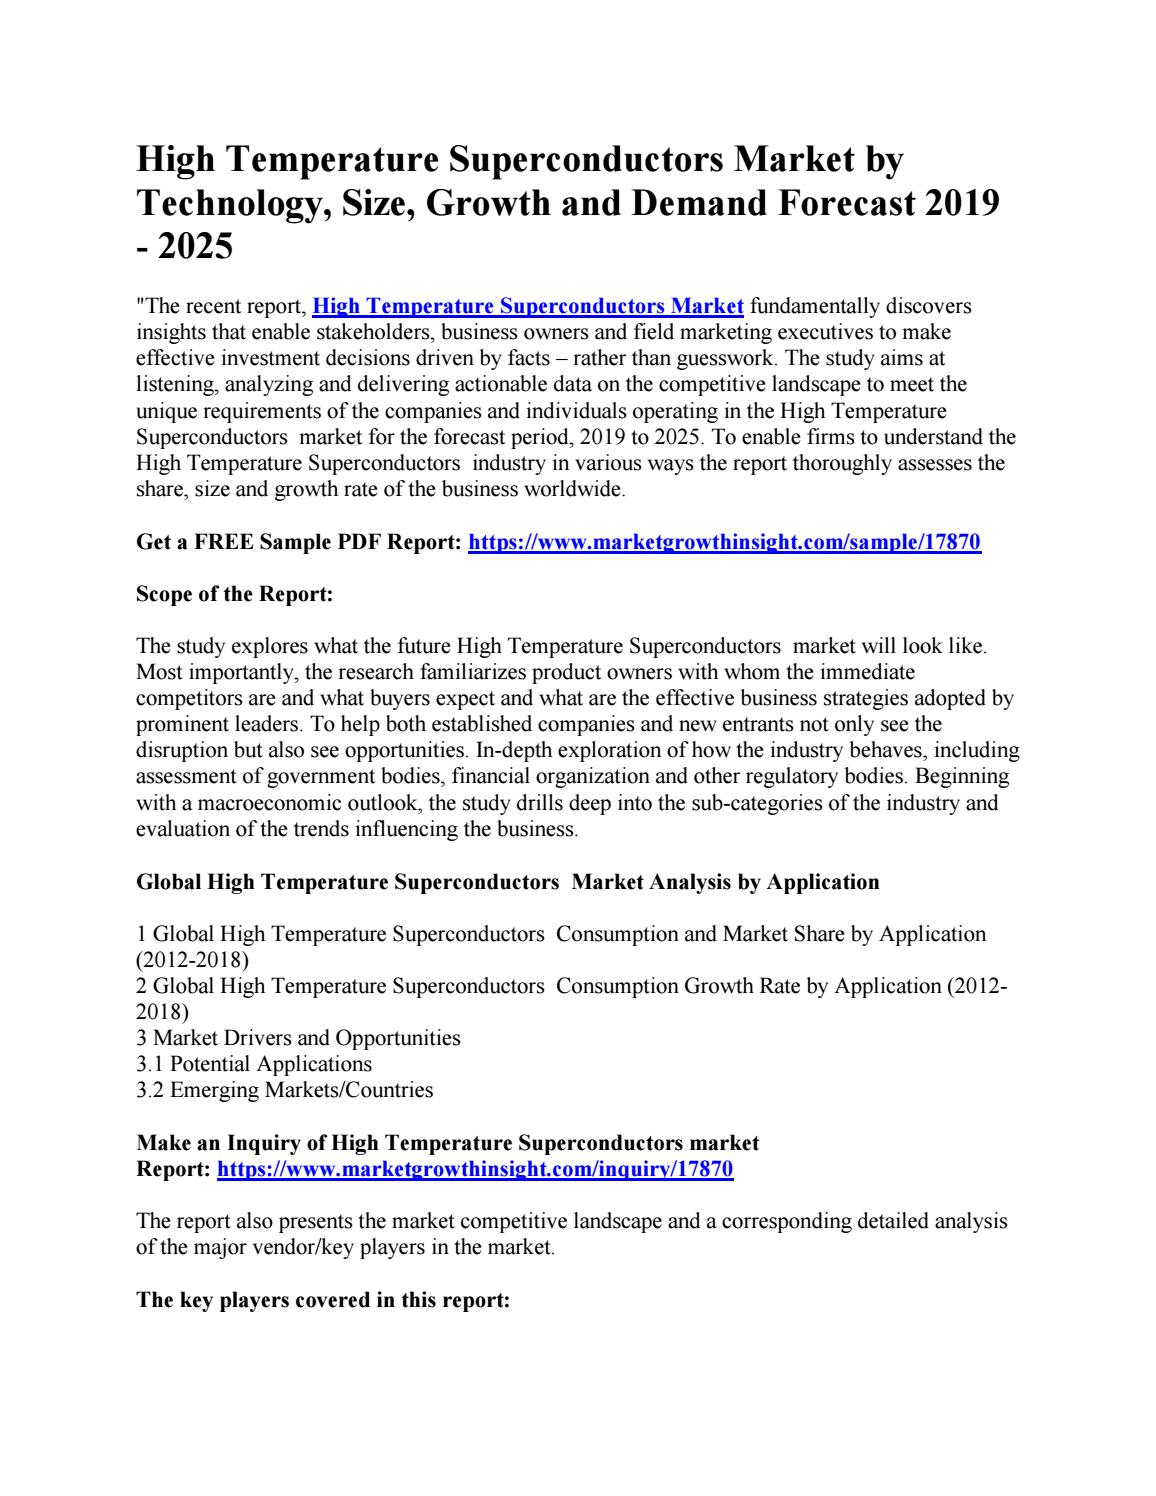 High Temperature Superconductors Market by Technology, Size